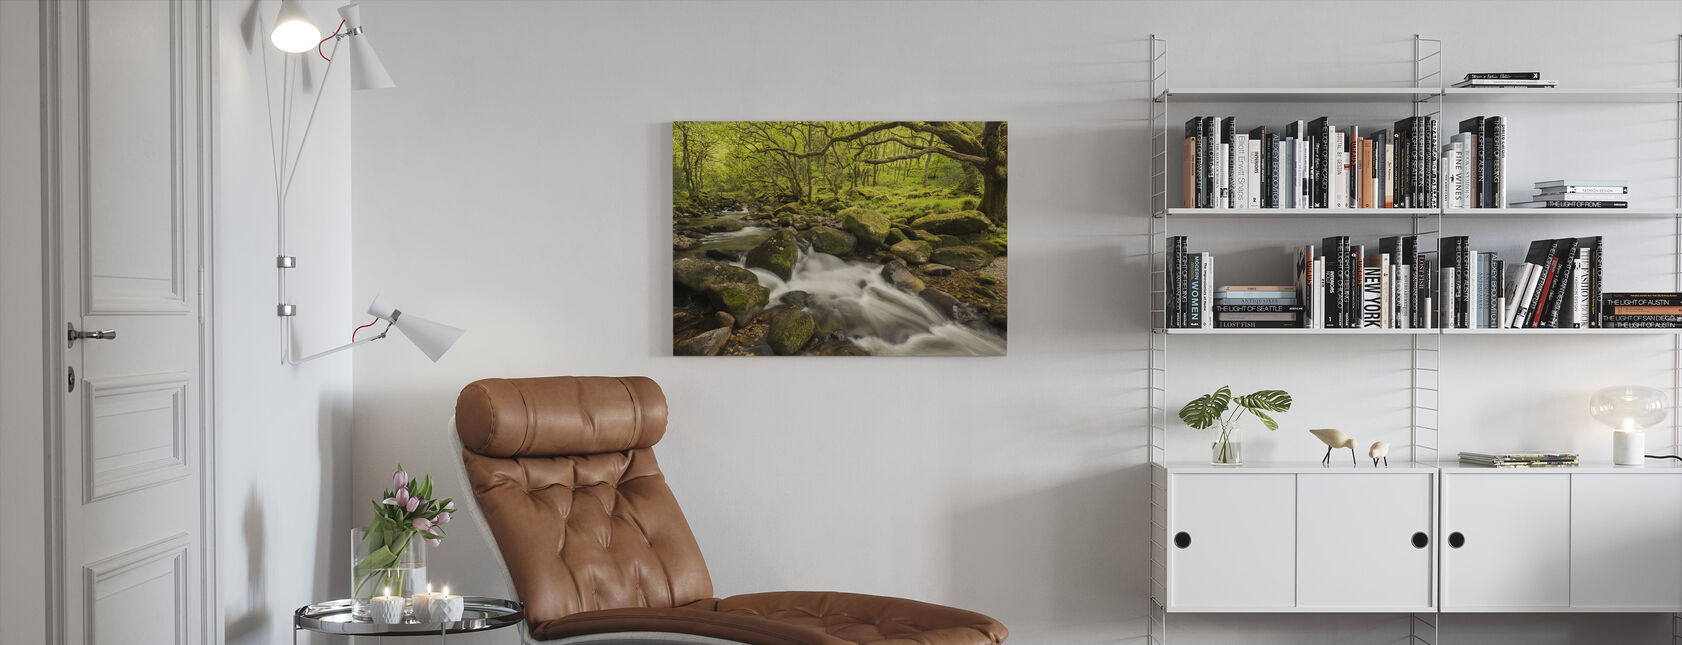 River Plym in Dewerstone Wood, Devon, England, UK - Canvas print - Living Room